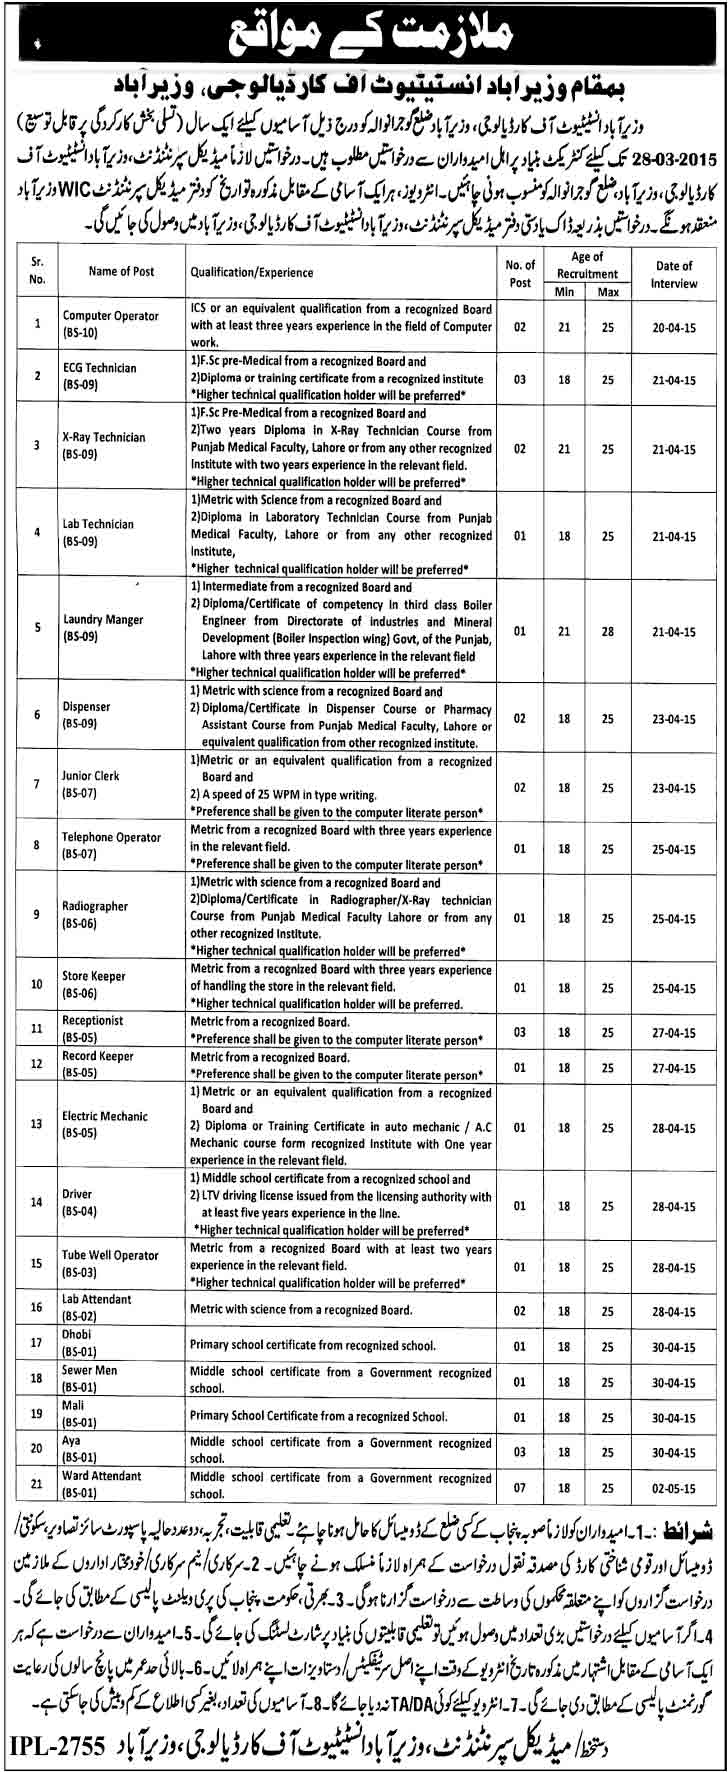 Wazirabad-Institute-Jobs